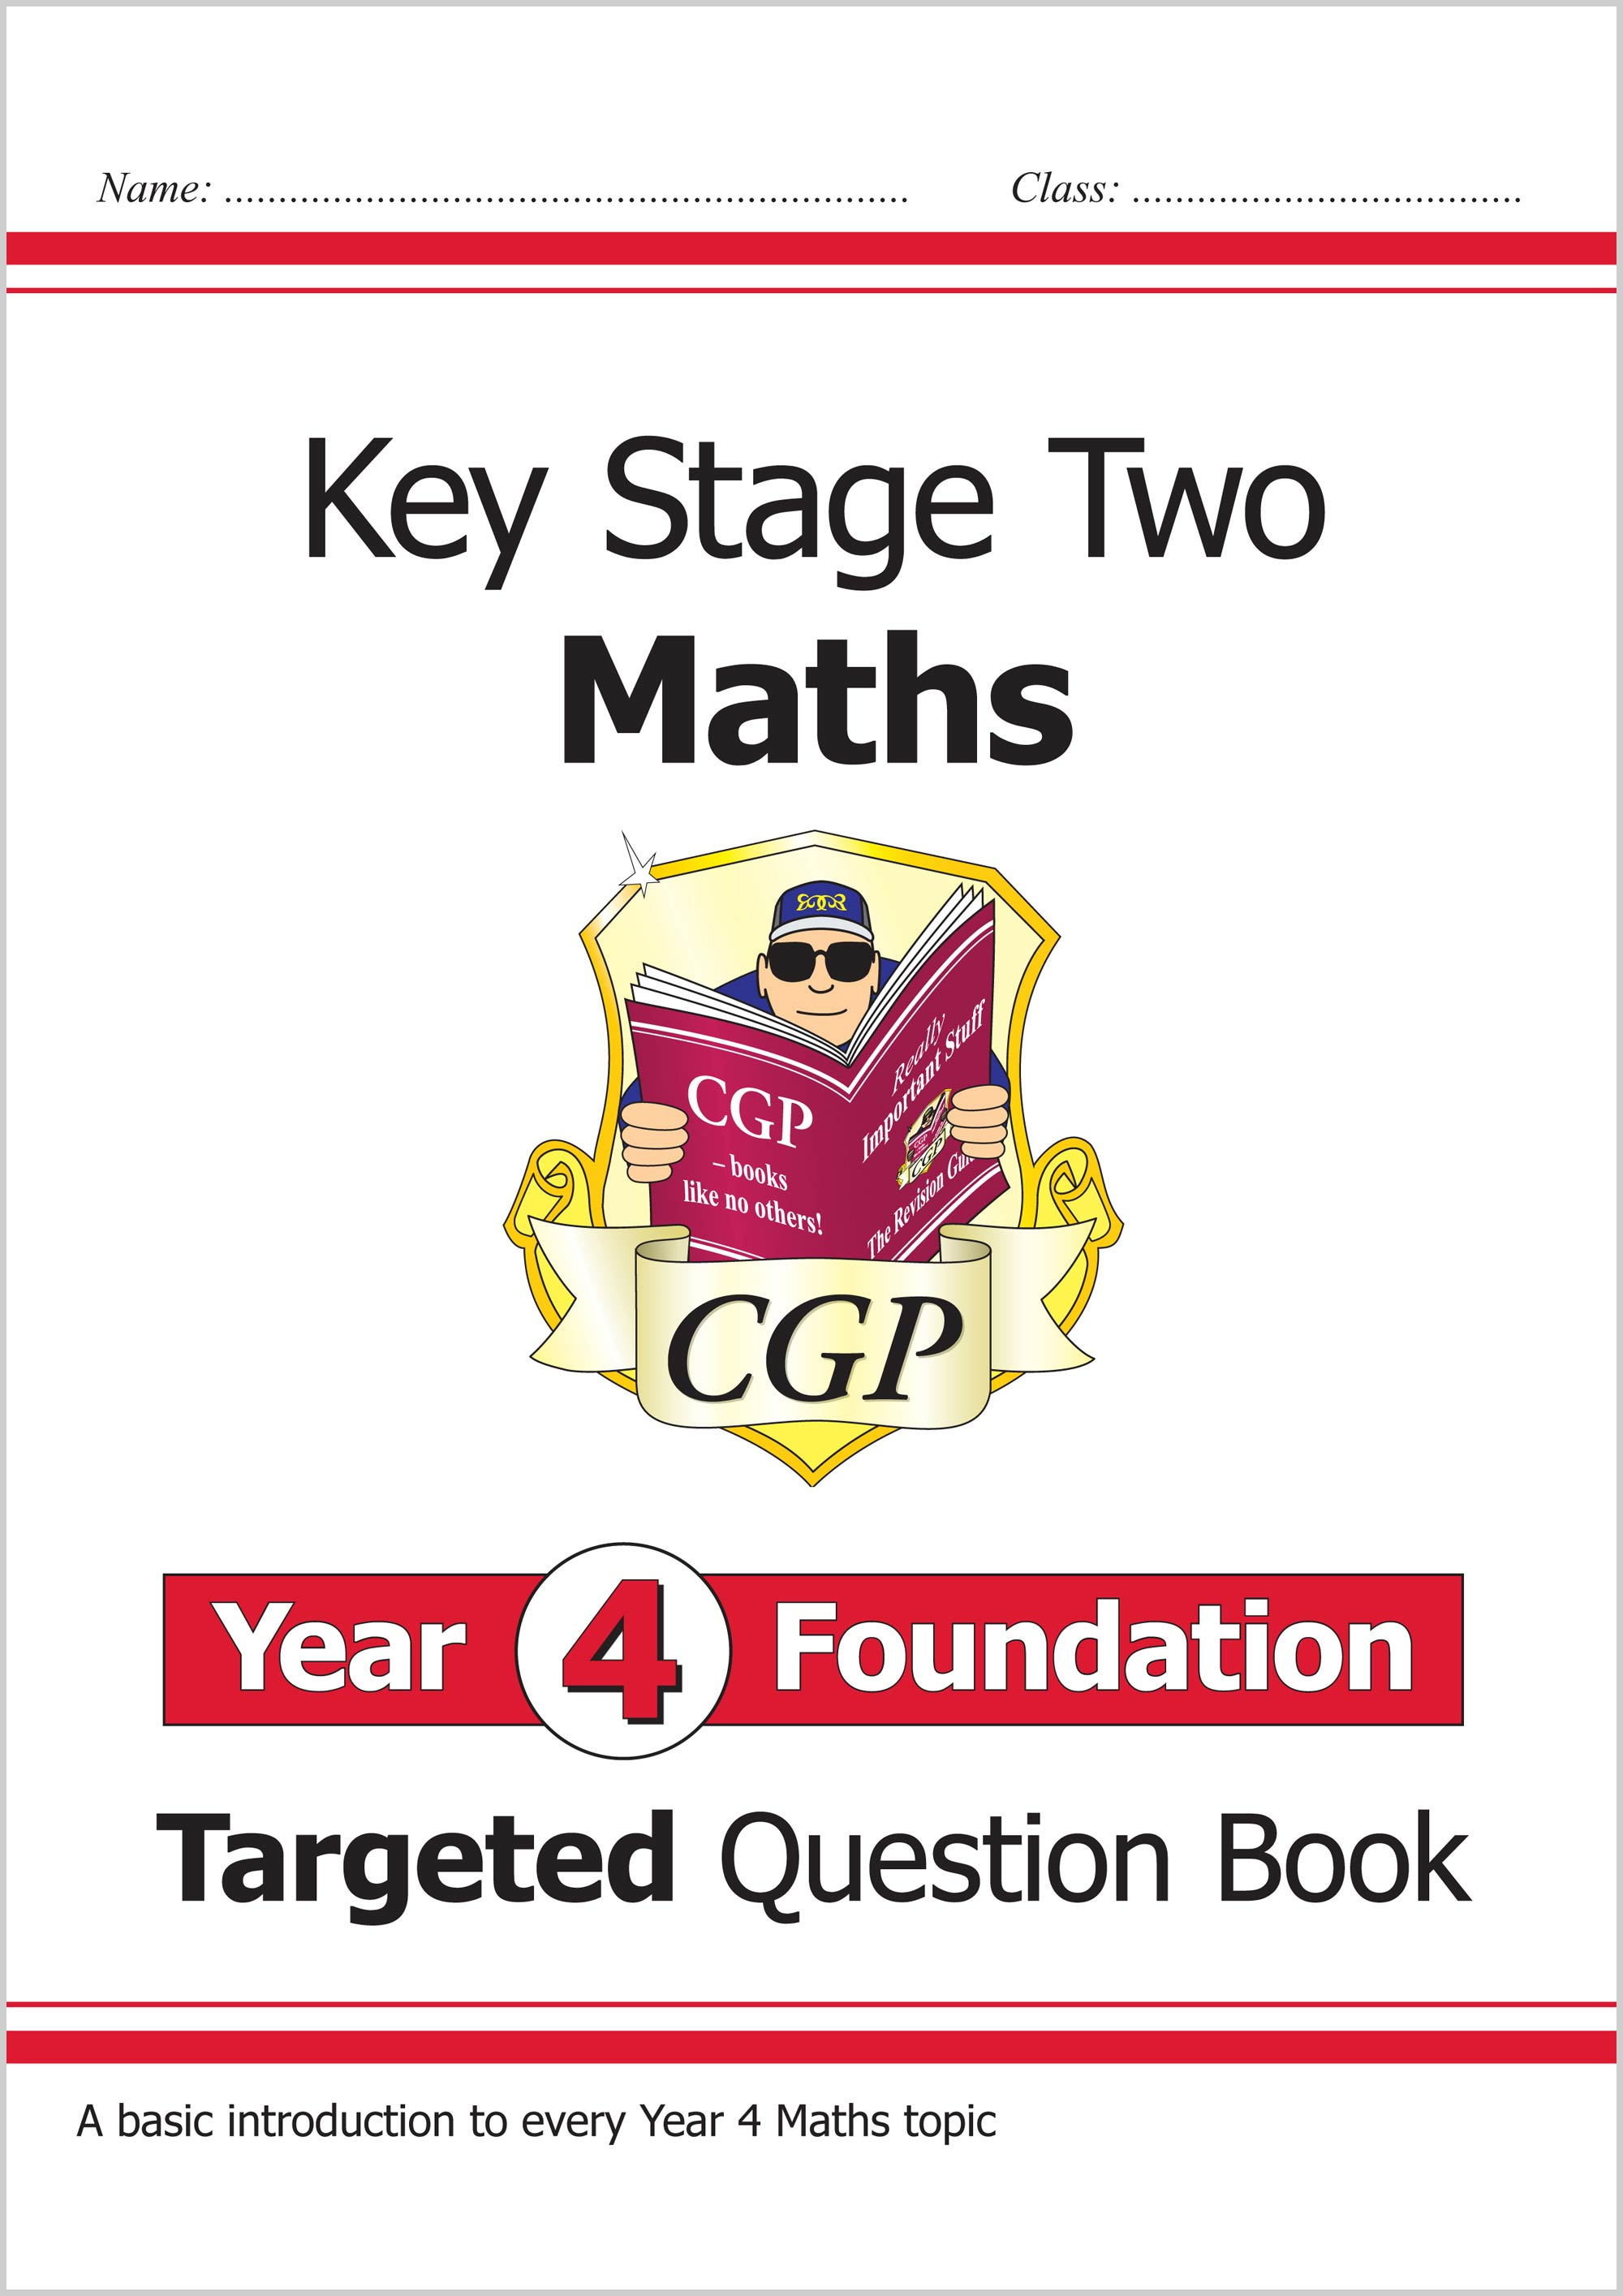 M4FQ21 - KS2 Maths Targeted Question Book: Year 4 Foundation